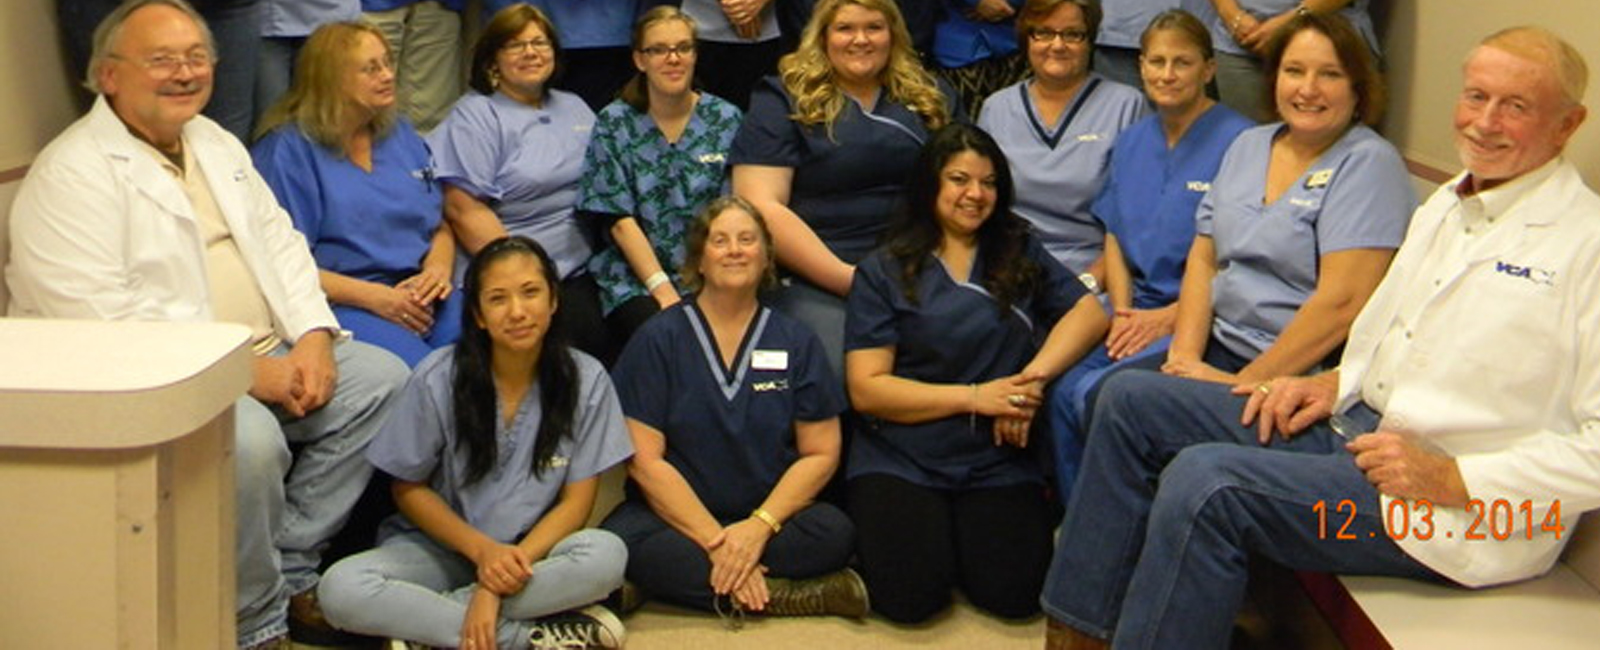 Homepage Team Picture of VCA Animal Emergency Southeast Animal Hospital